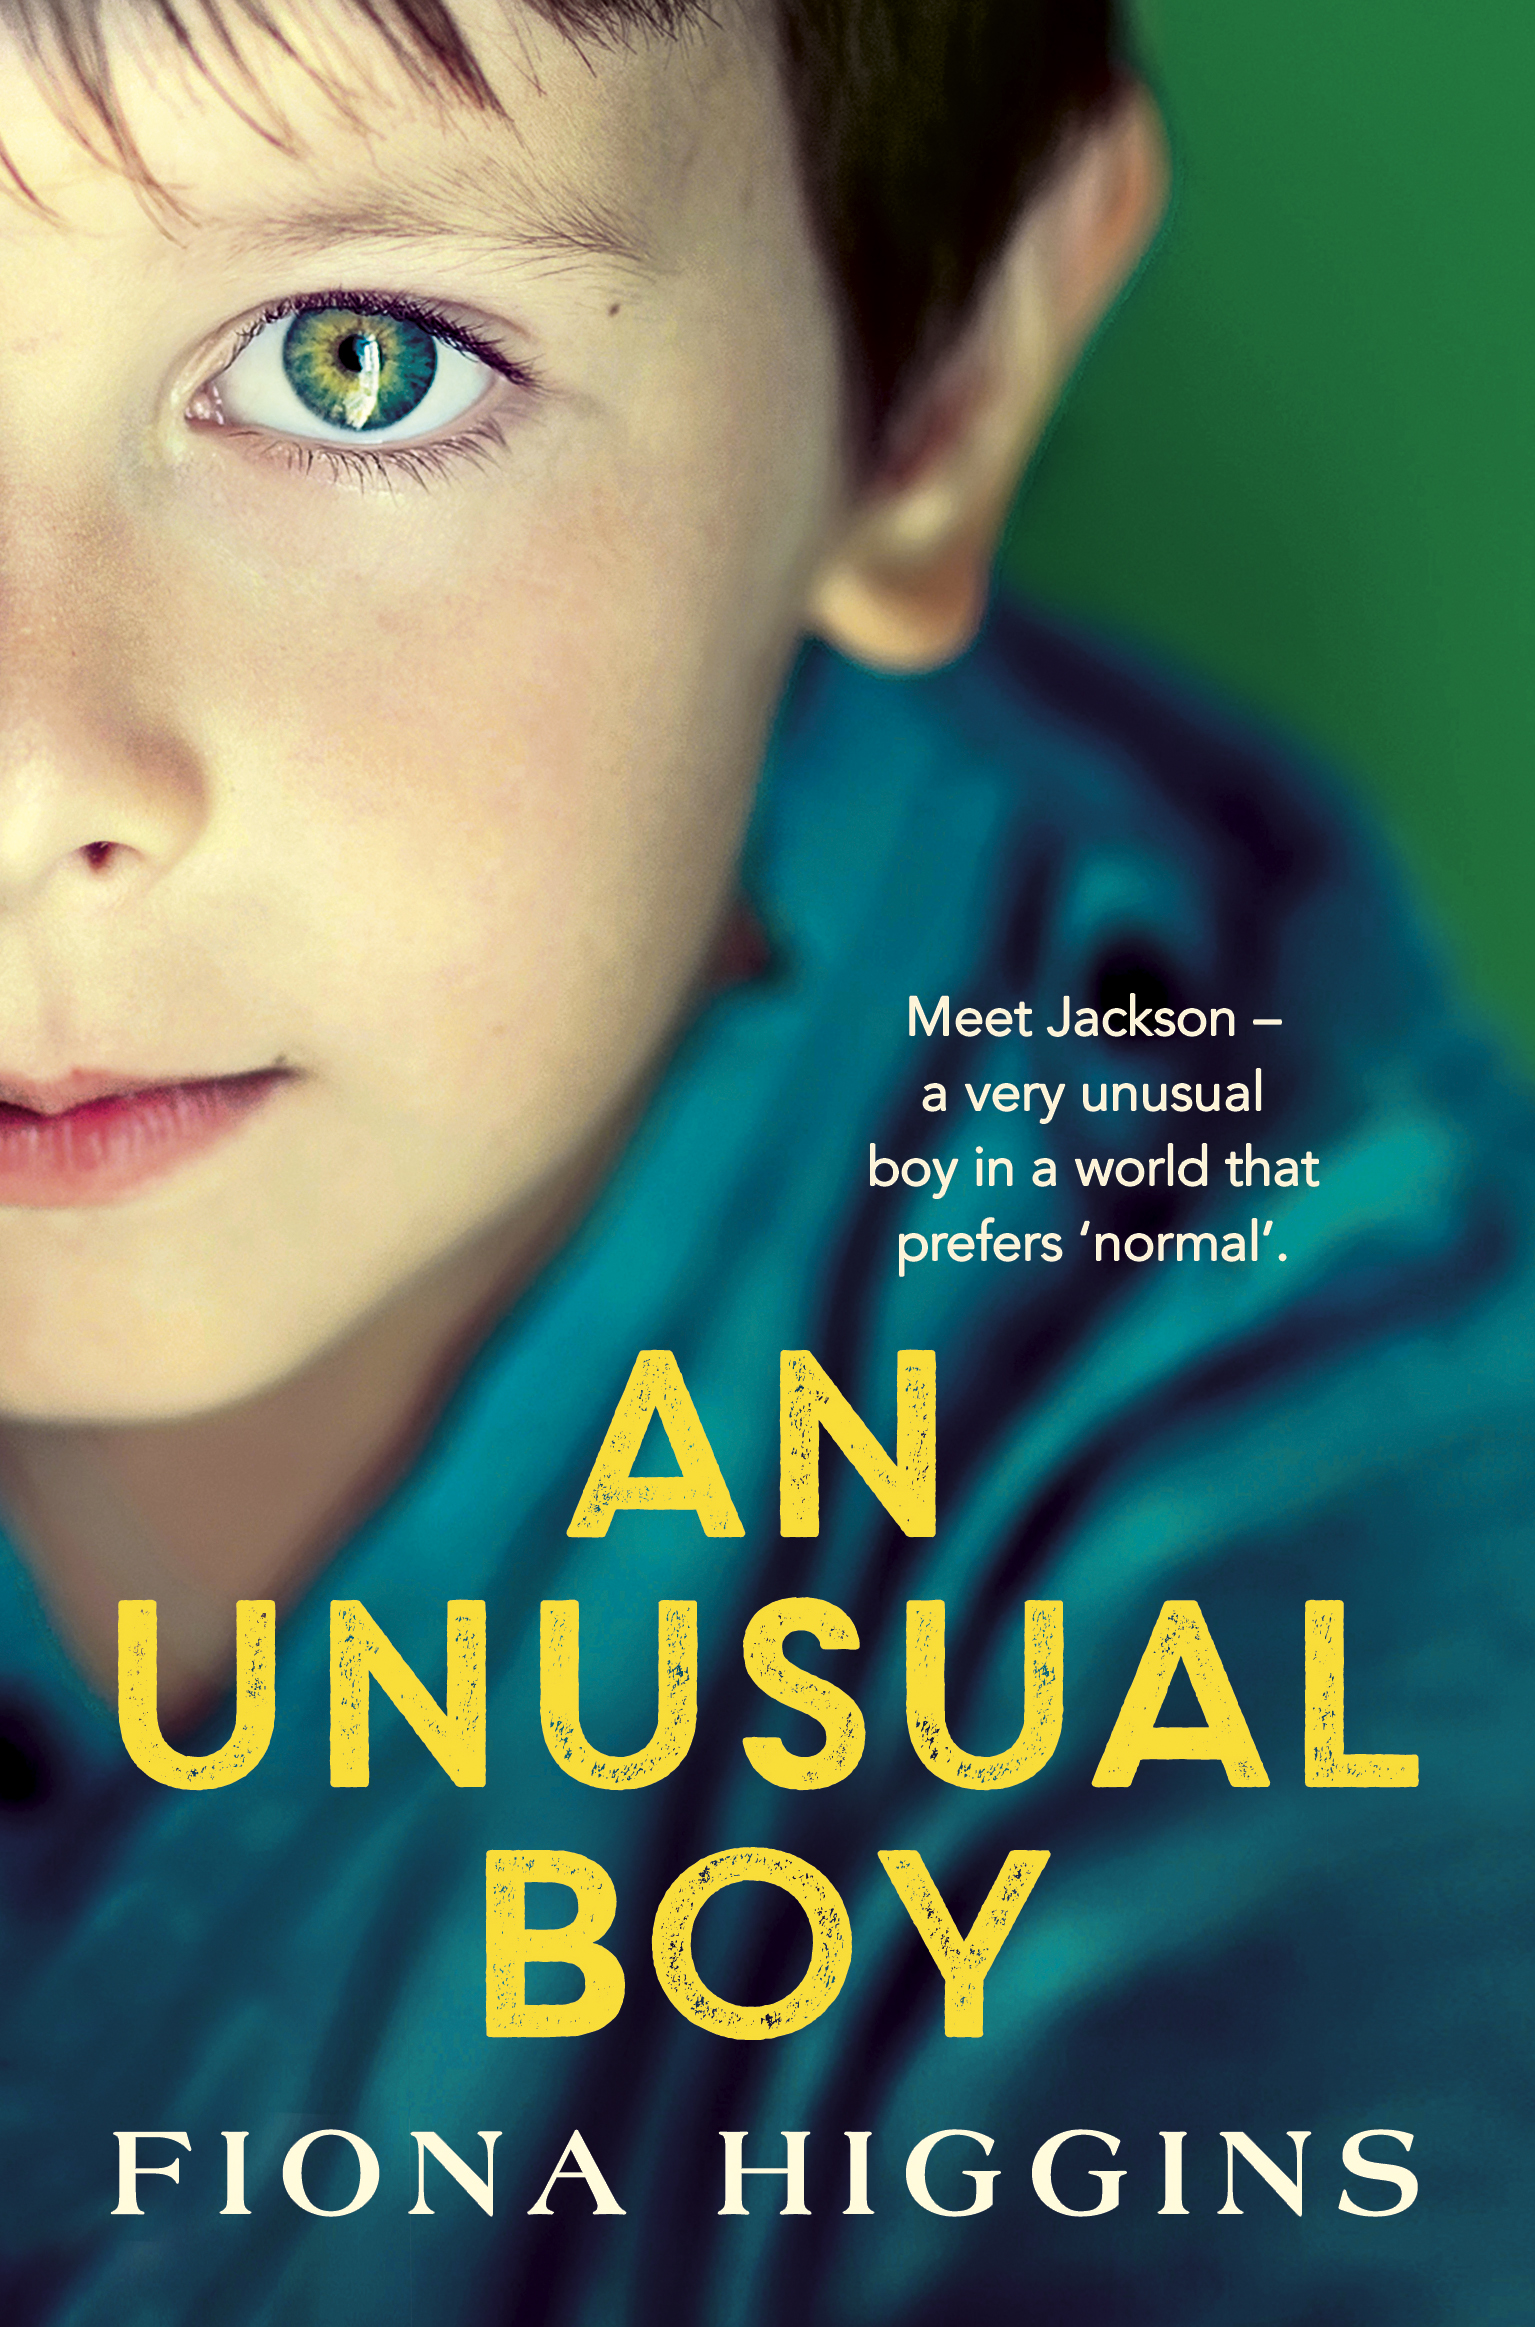 An Unusual Boy Fiona Higgins